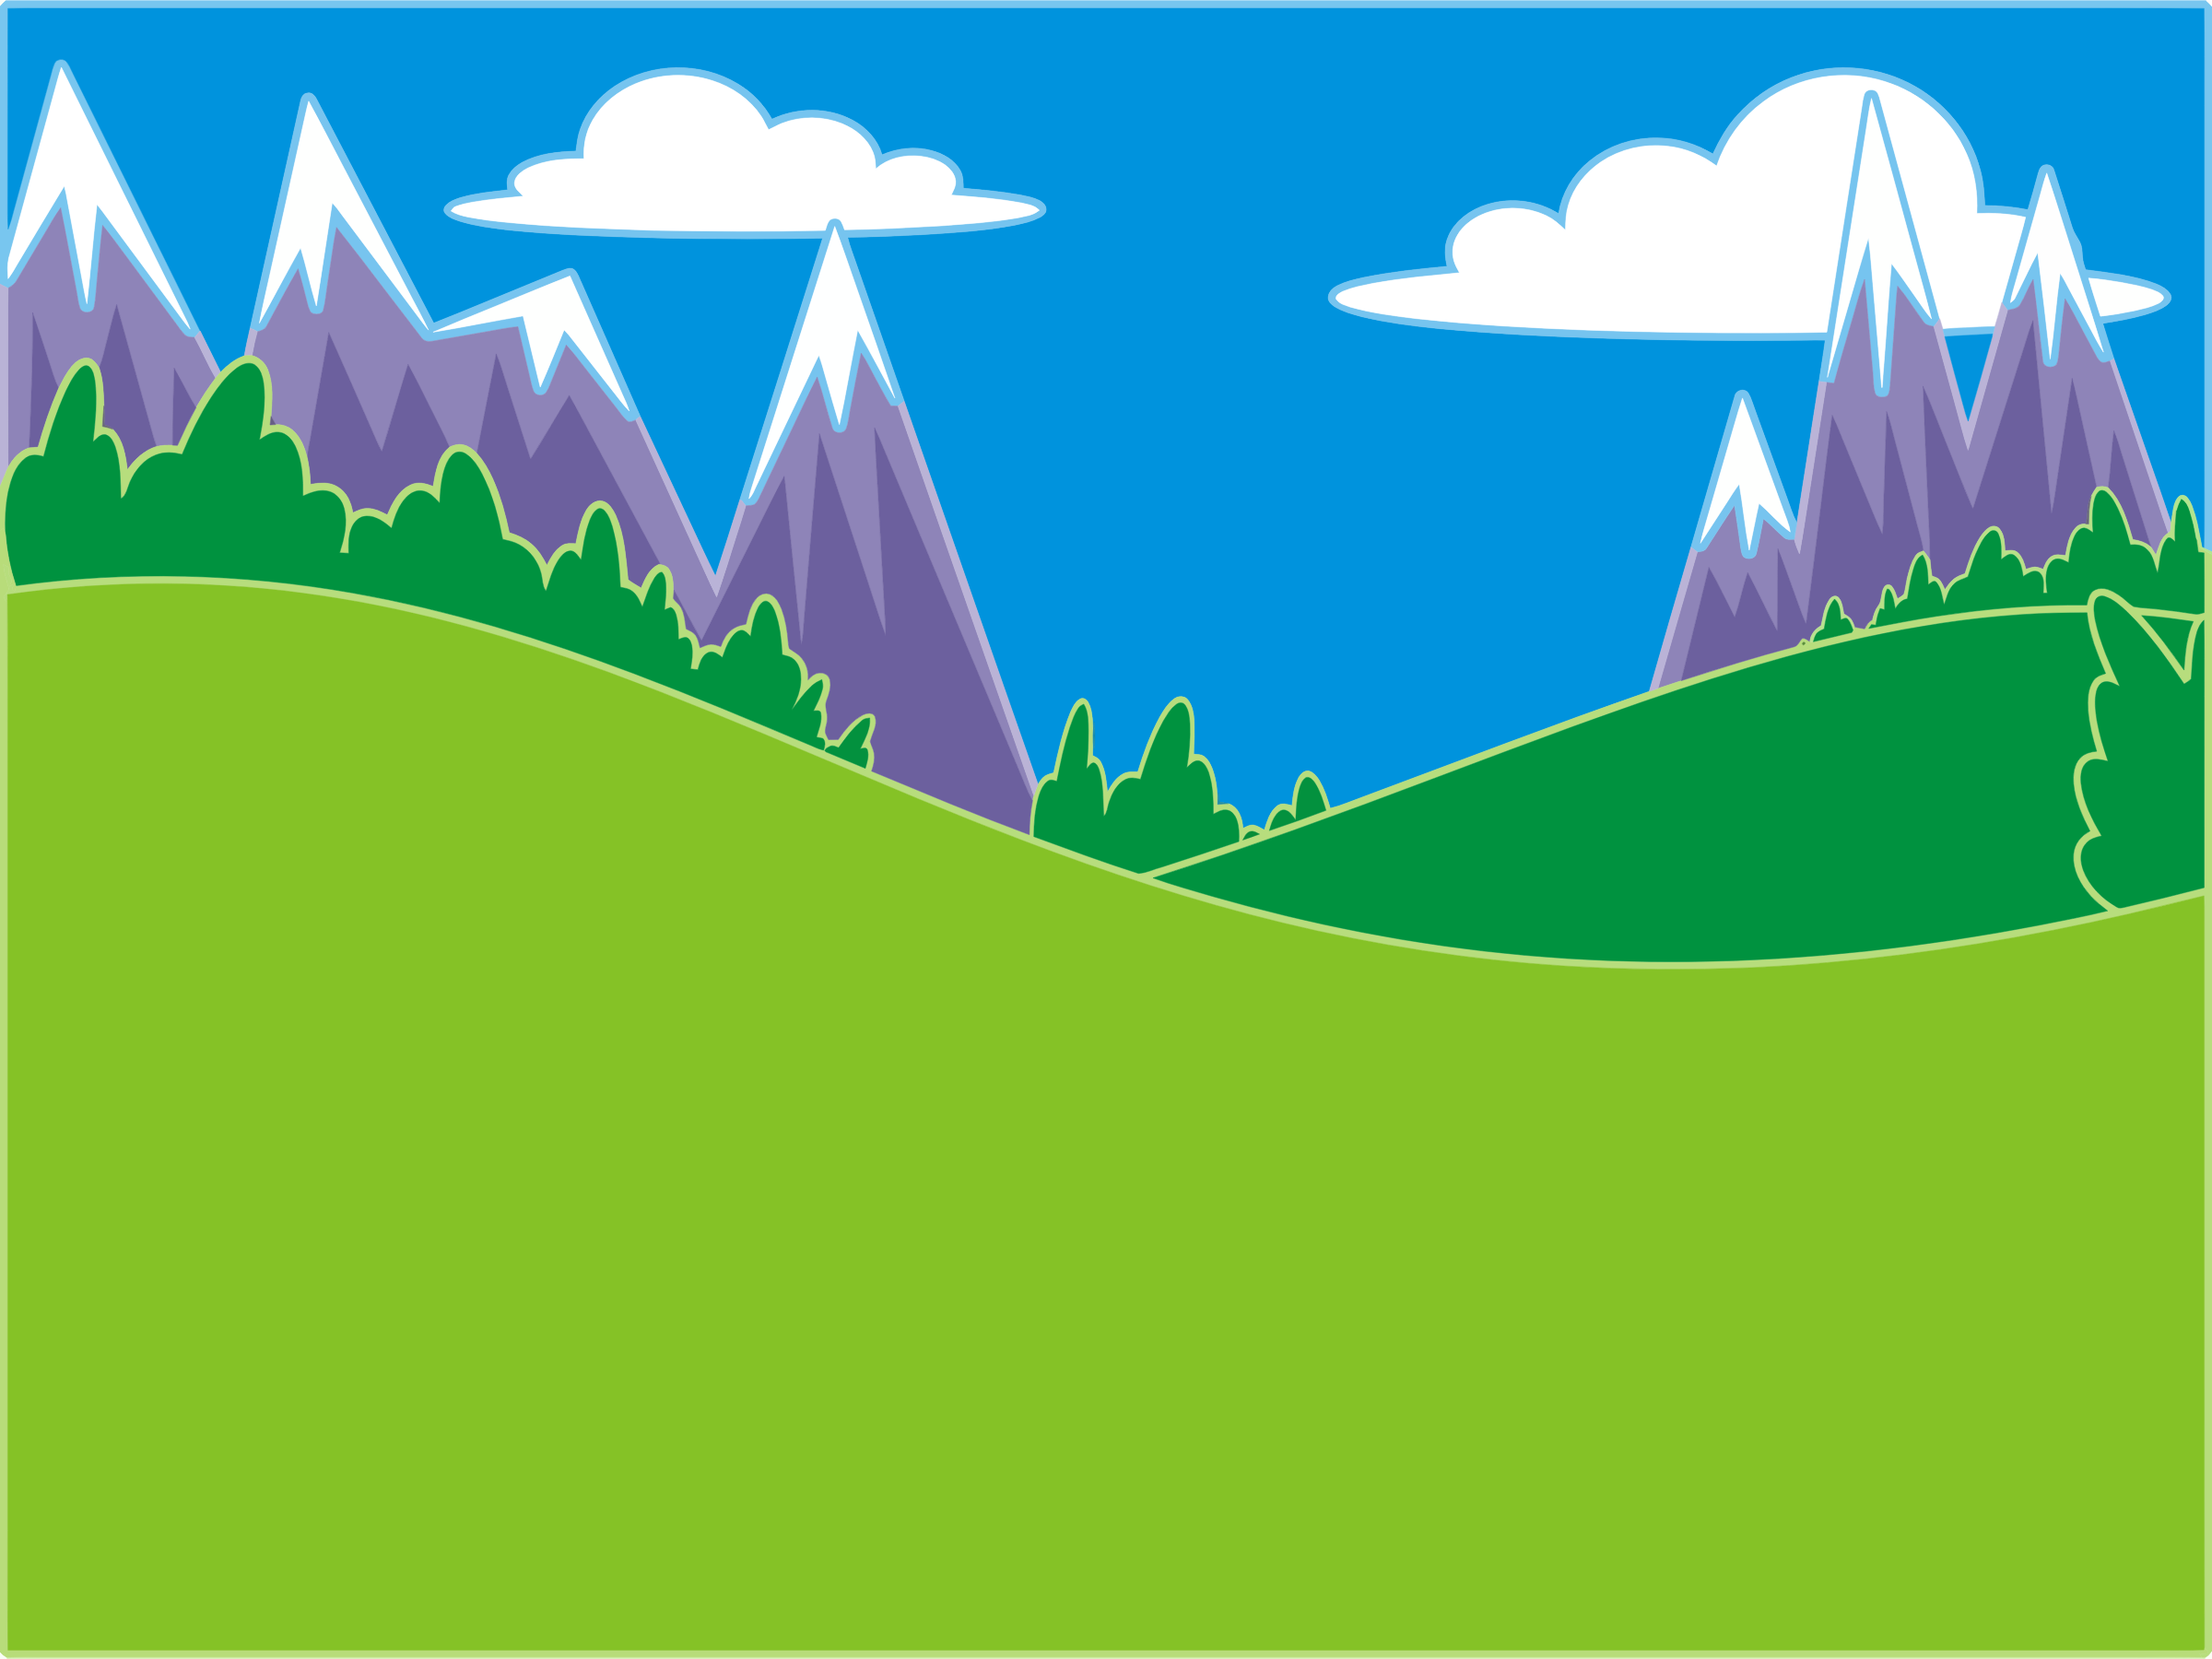 Hills clipart landscape. Green and mountains wikiclipart